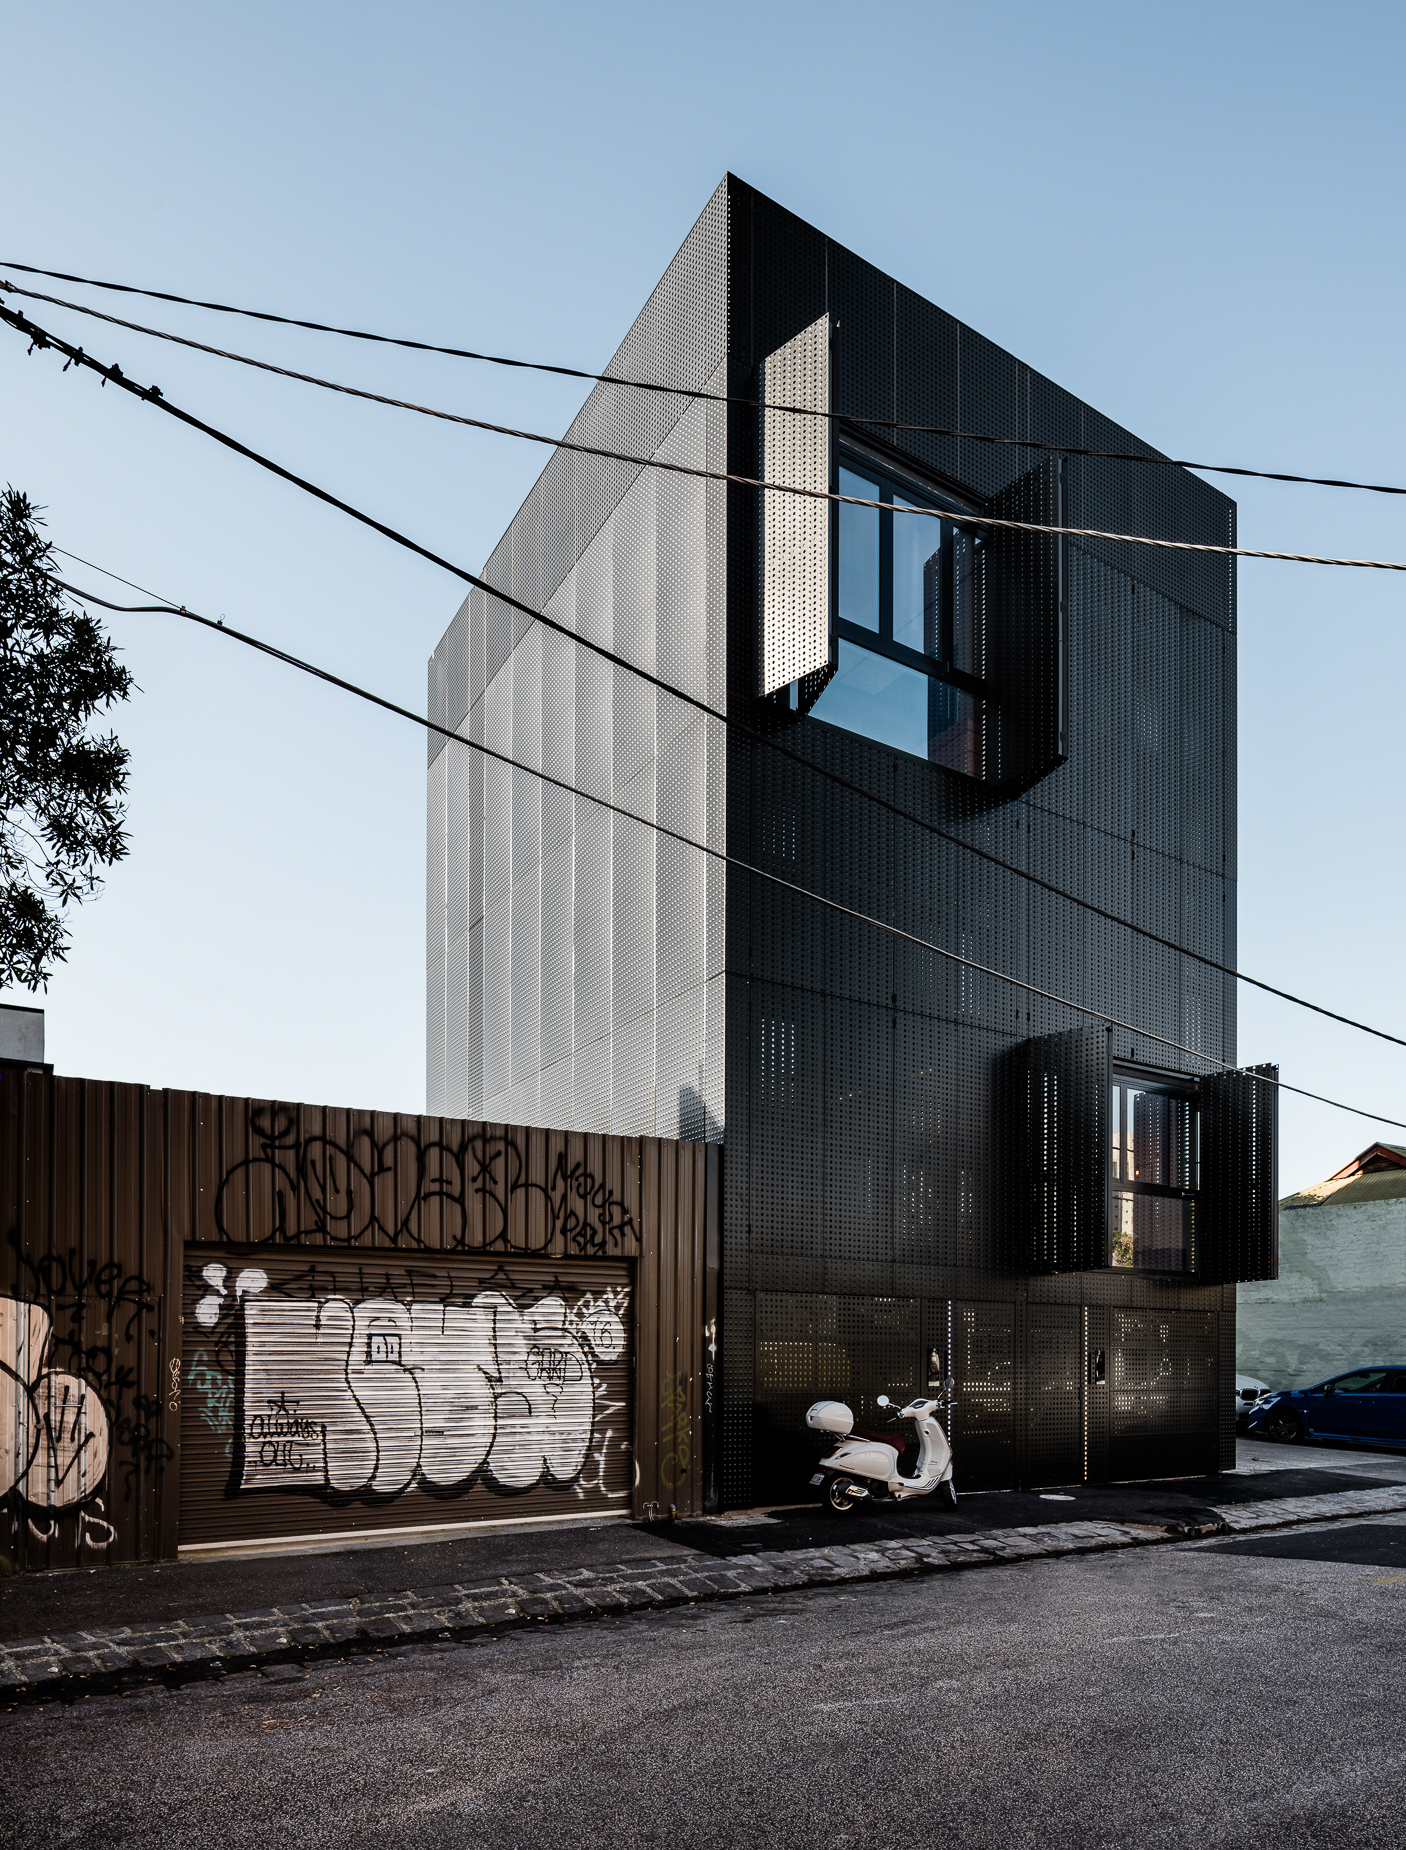 campbell-street-dko-architecture-slab-architecture-the-design-emotive-02.jpg